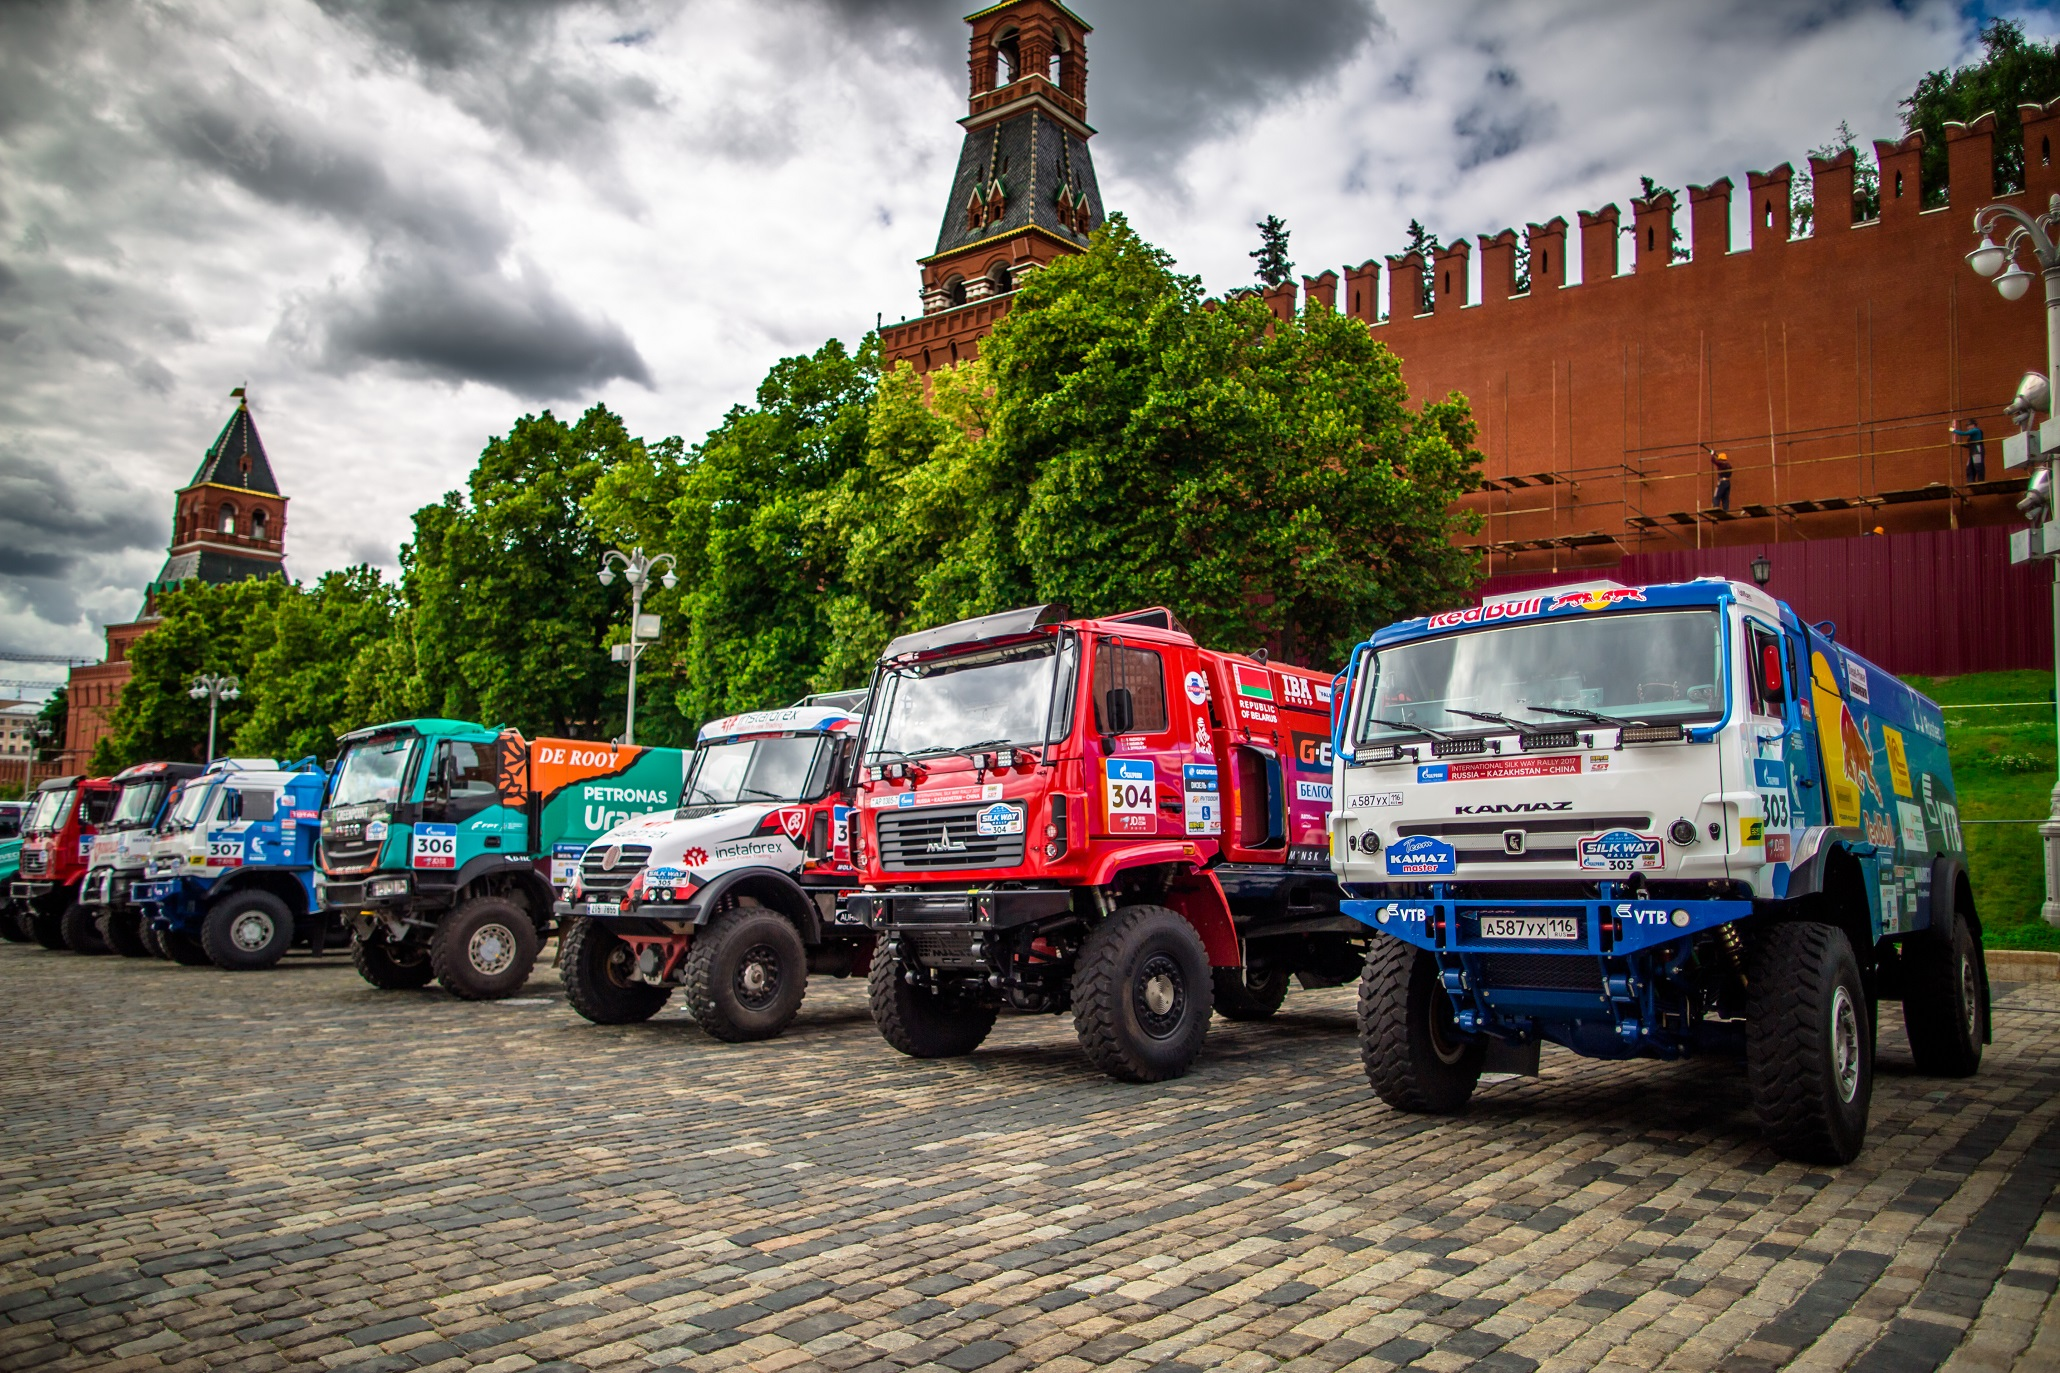 Ambiance Park Ferme on the Red Square during of the Silk Way Rally in Moscow, Russia, July 7, 2017